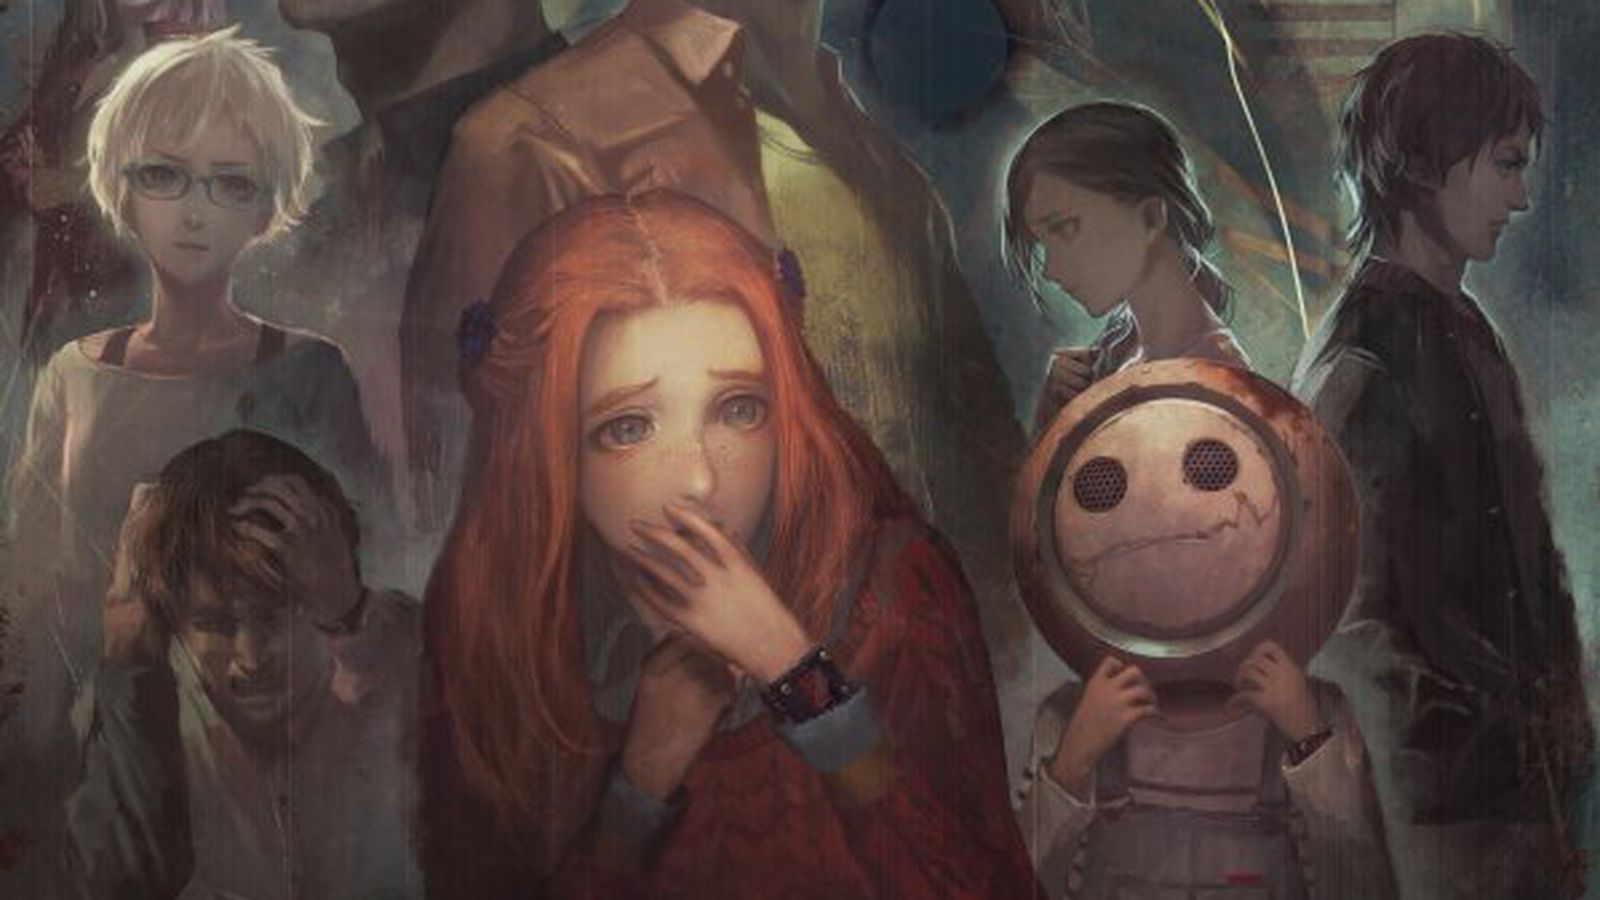 Bathroom Zero Time Dilemma newcomers can catch up to zero time dilemma's story with this 11